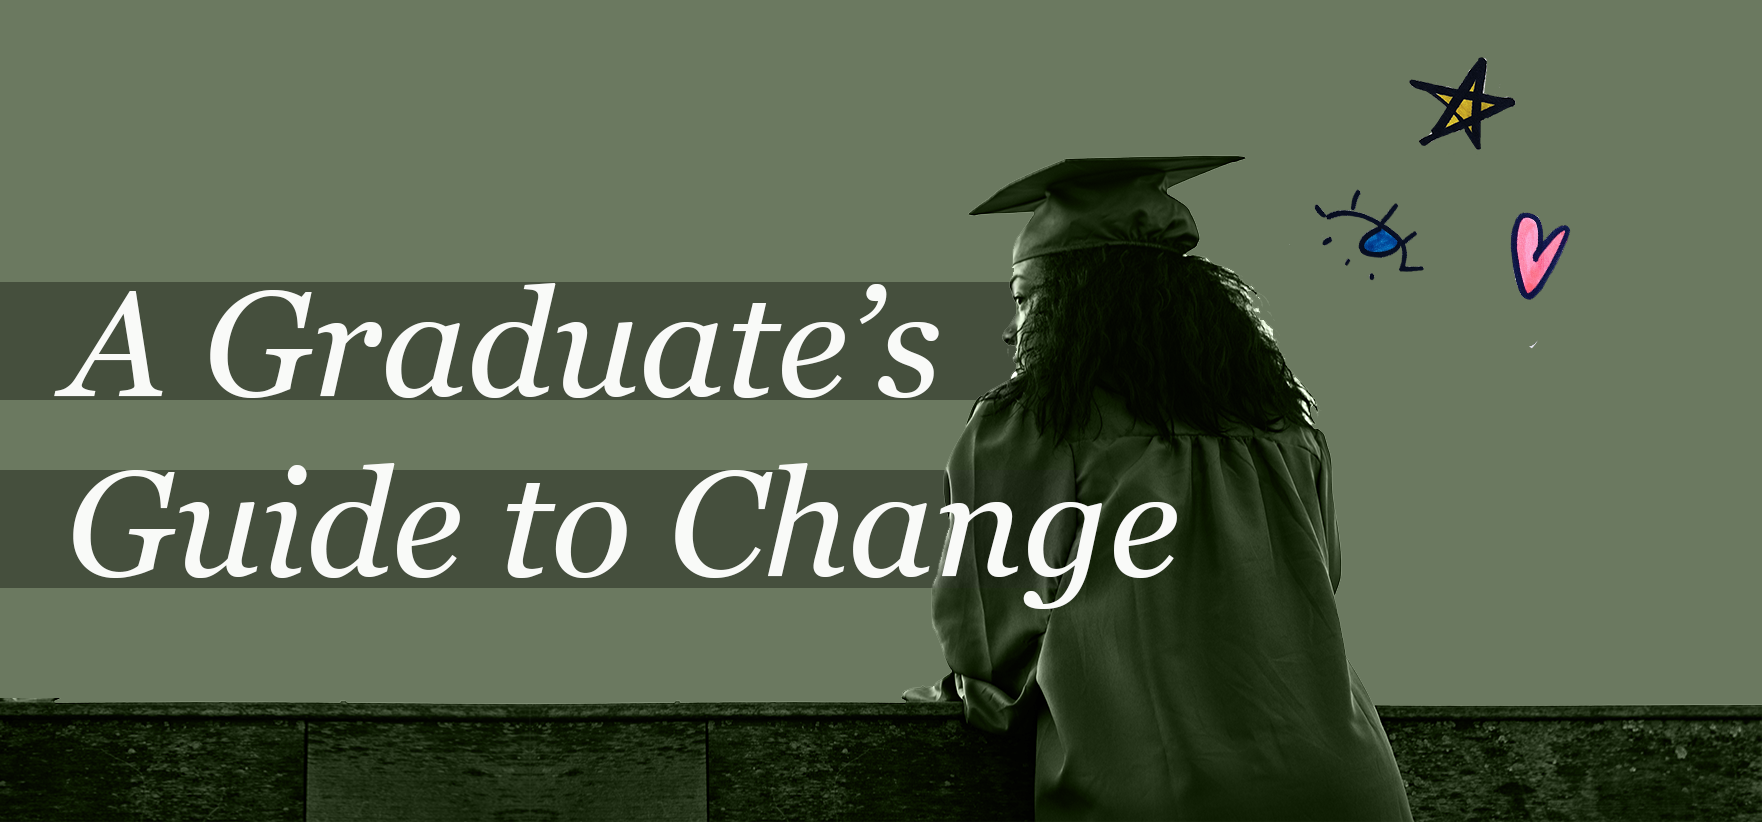 A Graduate's Guide to Change.png